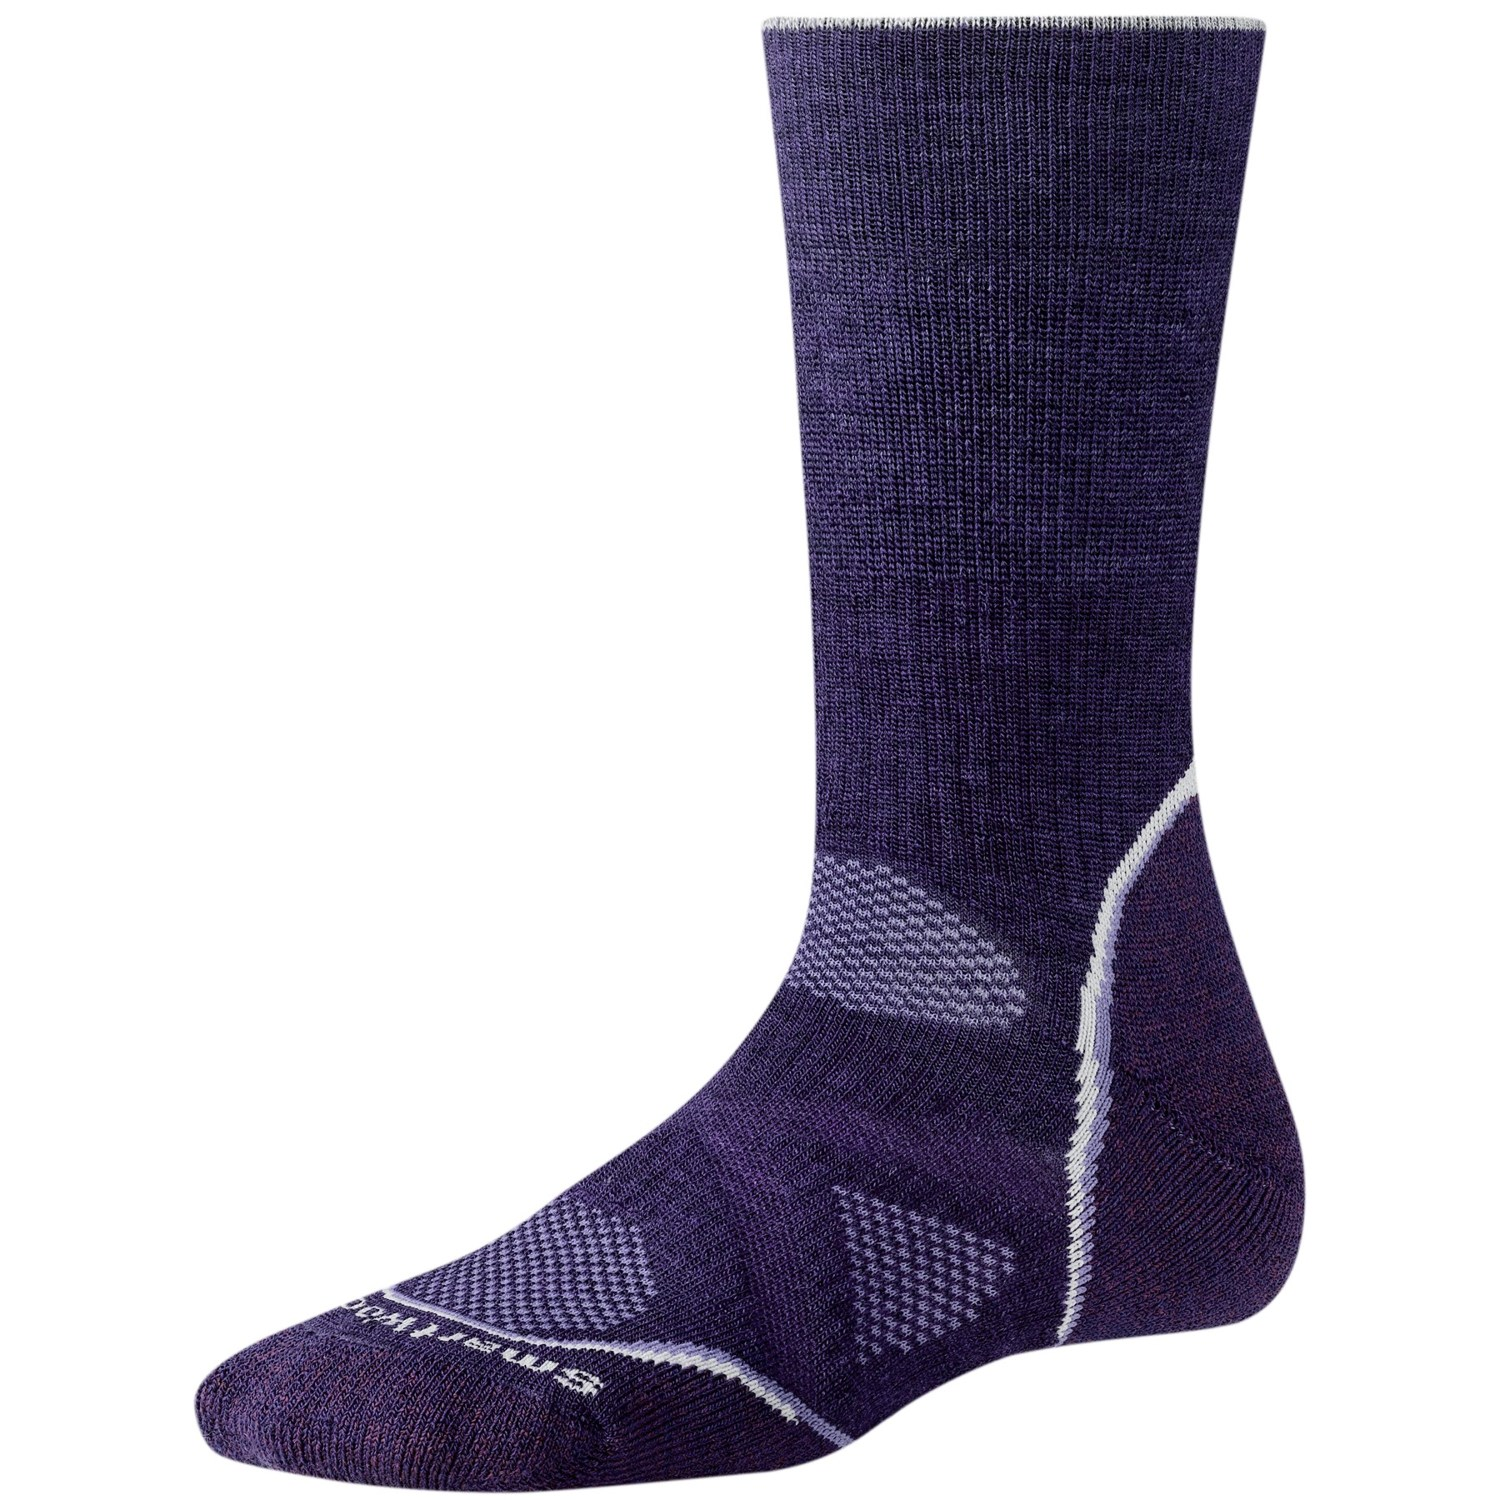 Rei Smartwool Phd Socks Wifi Hd Security Camera Outdoor Makeup Forever Ultra Hd Loose Powder Ingredients Lg Series 8 Oled55c8aua 55 Inch 4k Ultra Hd Smart Oled Tv: SmartWool PhD Outdoor Medium Crew Socks (For Women) 6032C